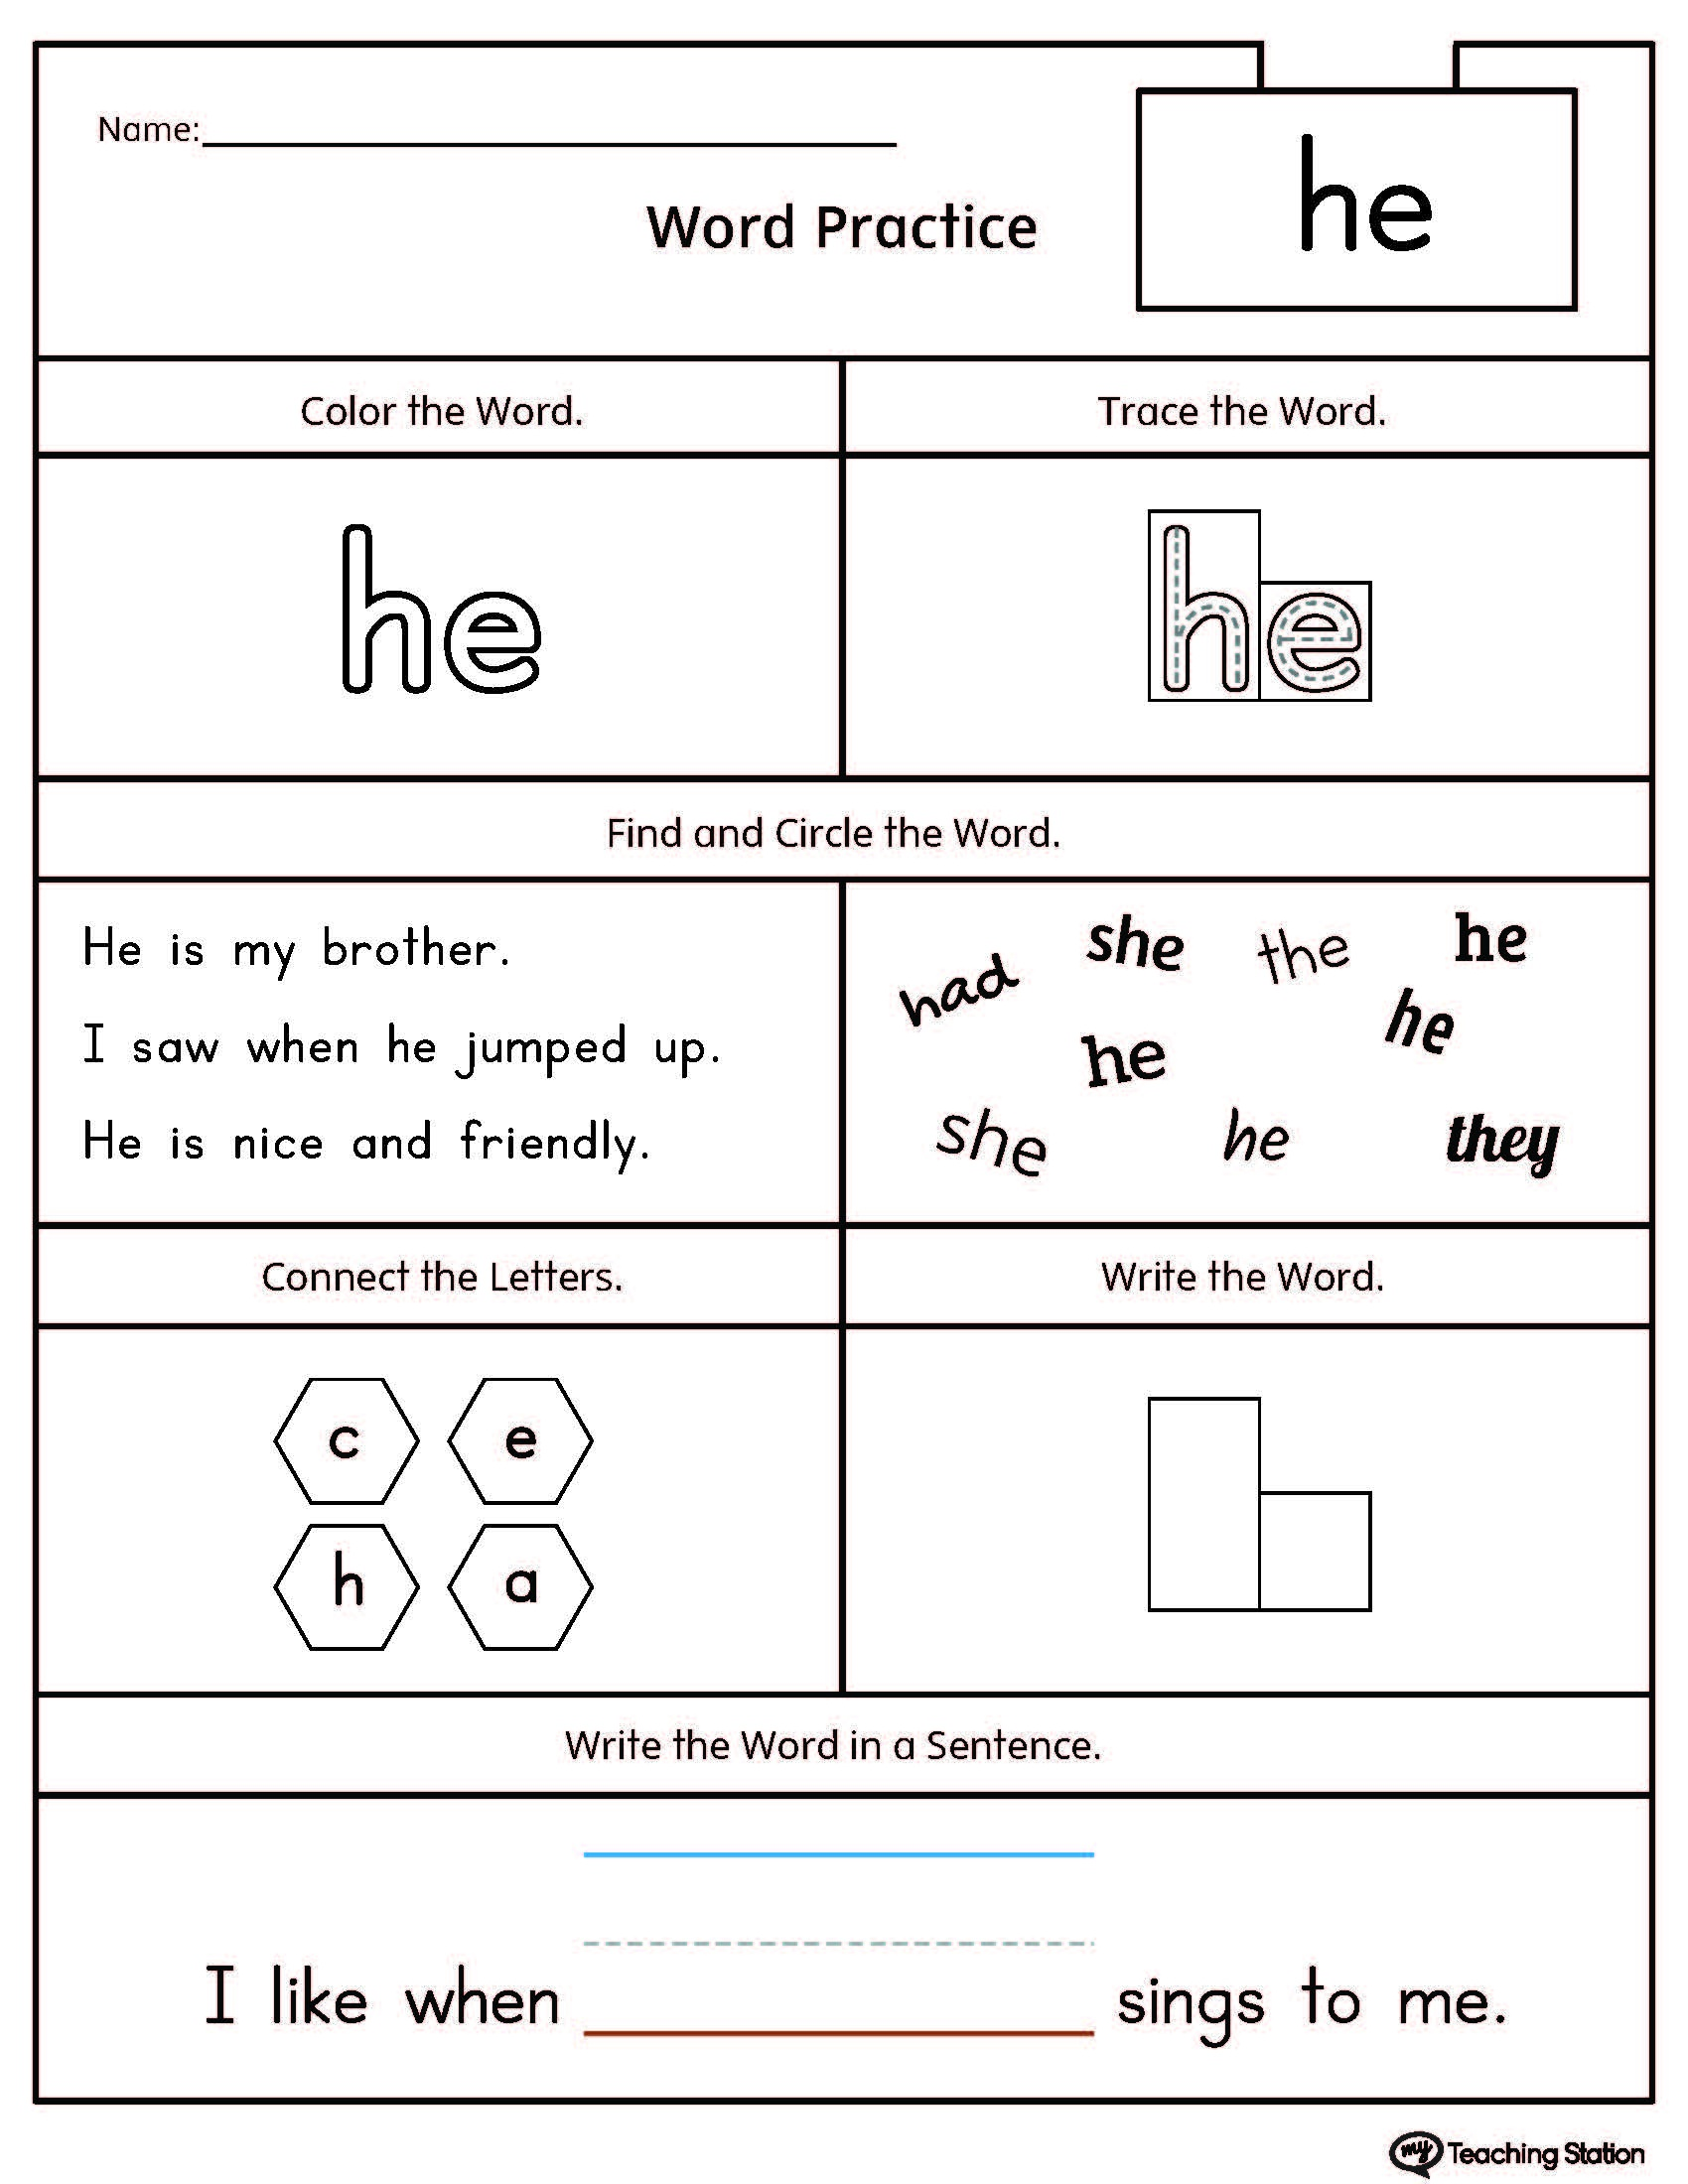 High Frequency Words Printable Worksheets | Myteachingstation - Free Sight Word Printables